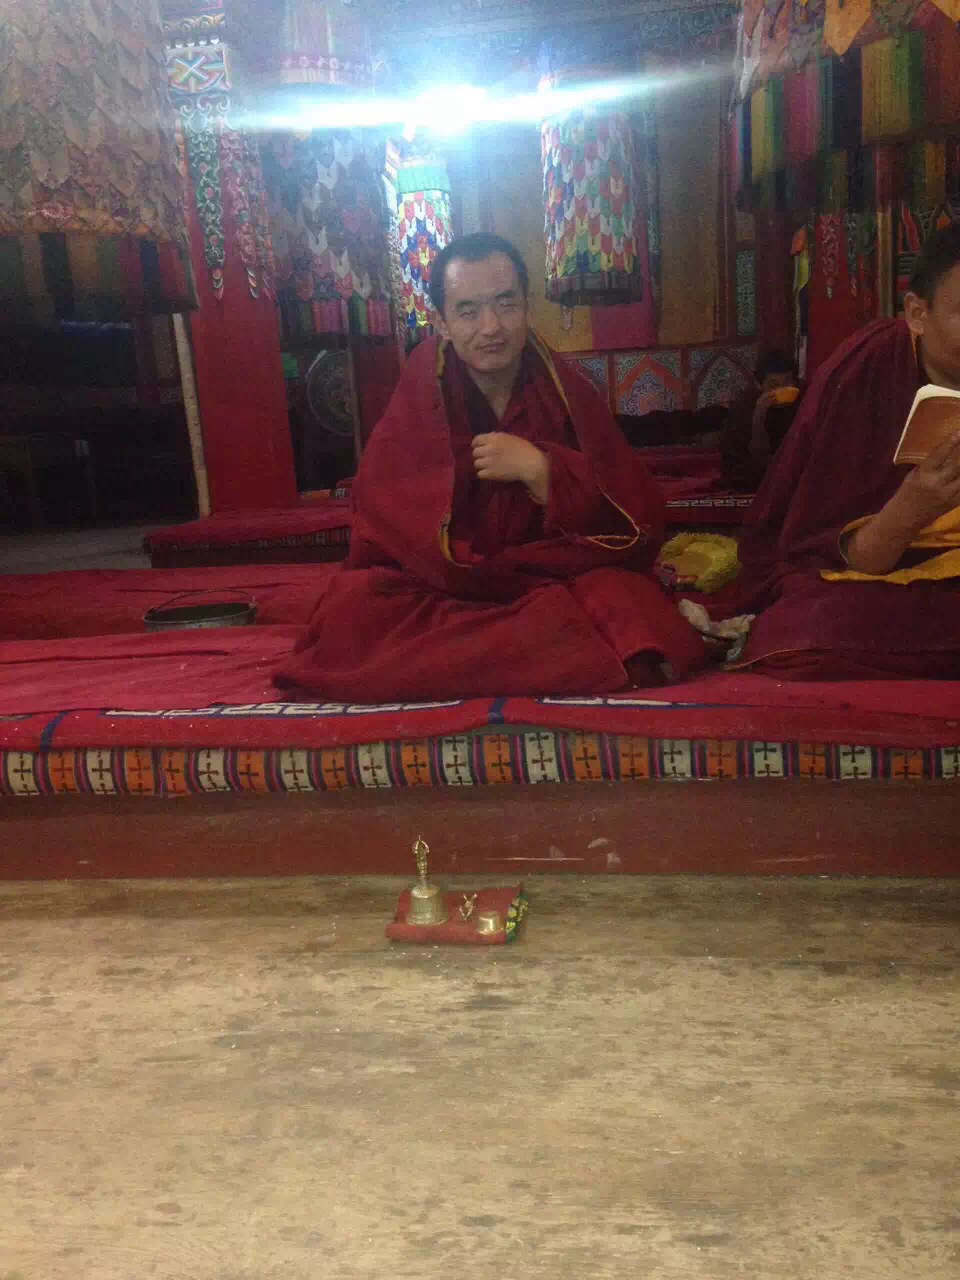 Lone protester Lobsang Tsering's whereabouts remains unknown